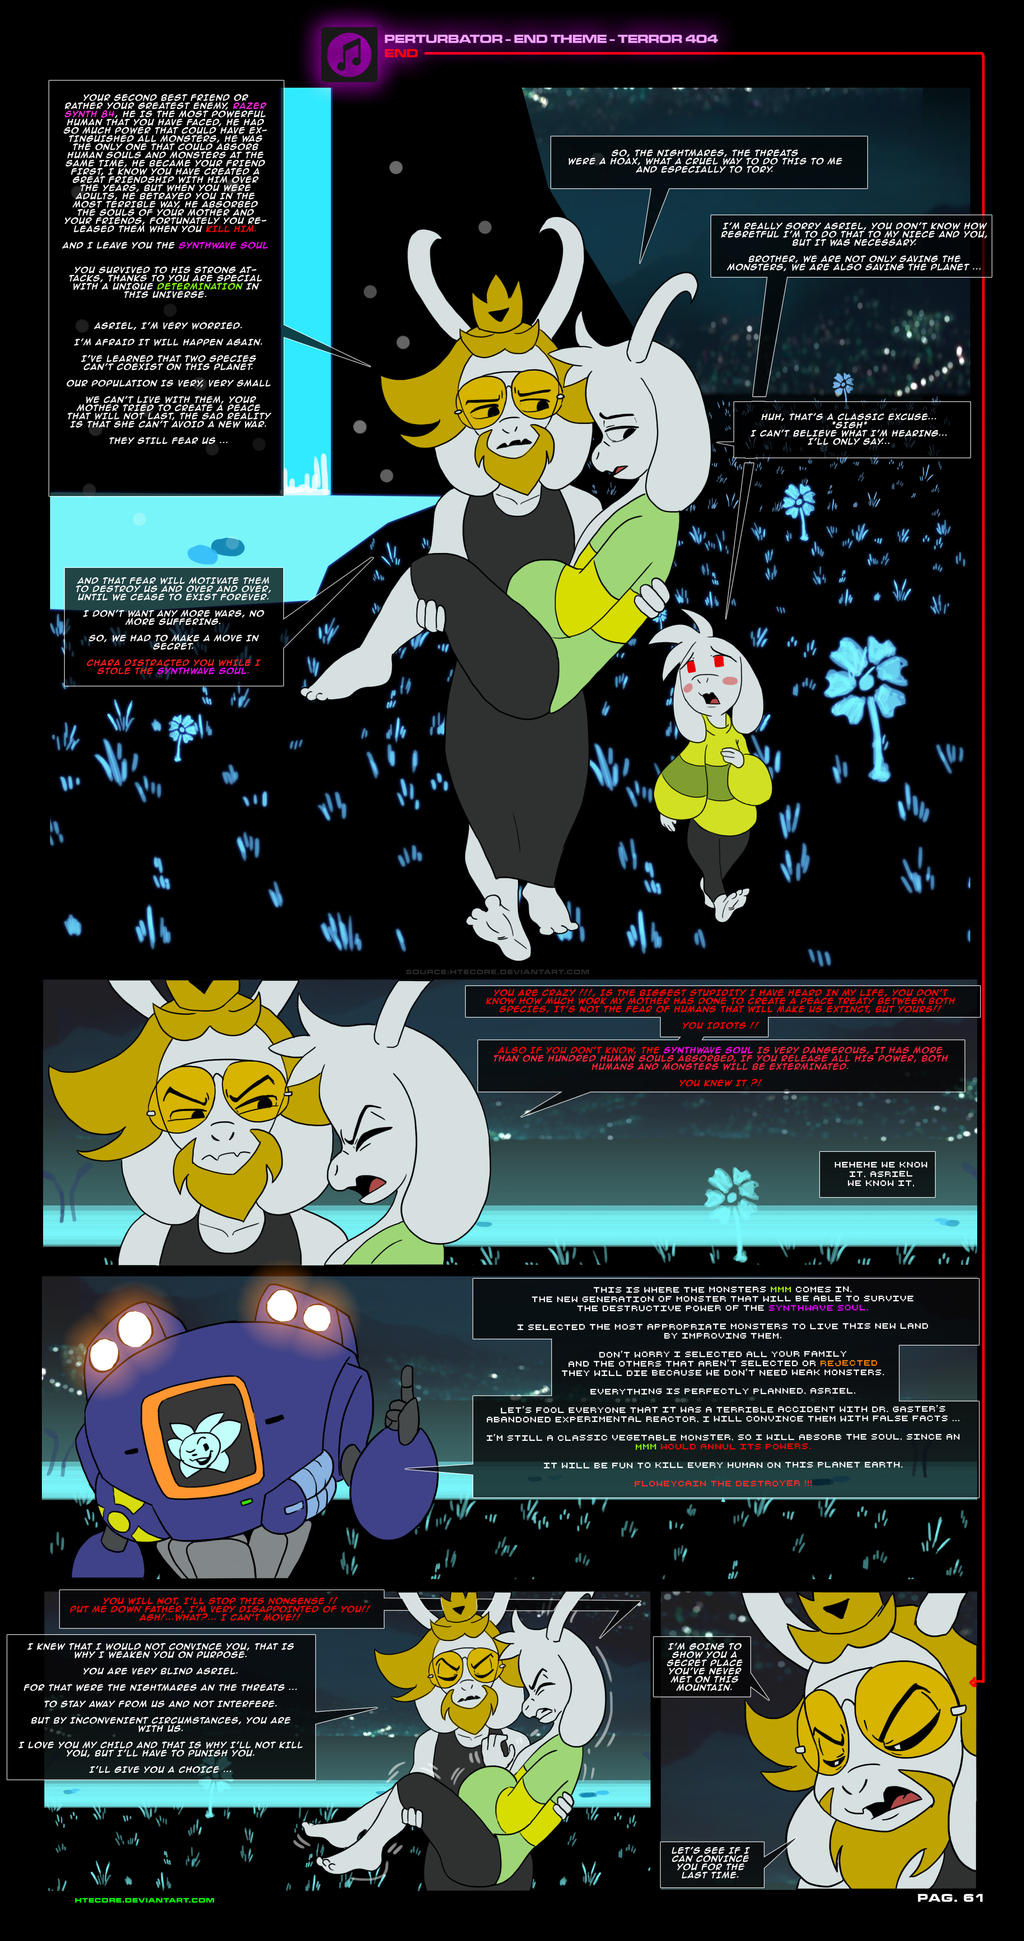 Asriel Synth Undertale AU comic pag 61 by HTECORE on ...